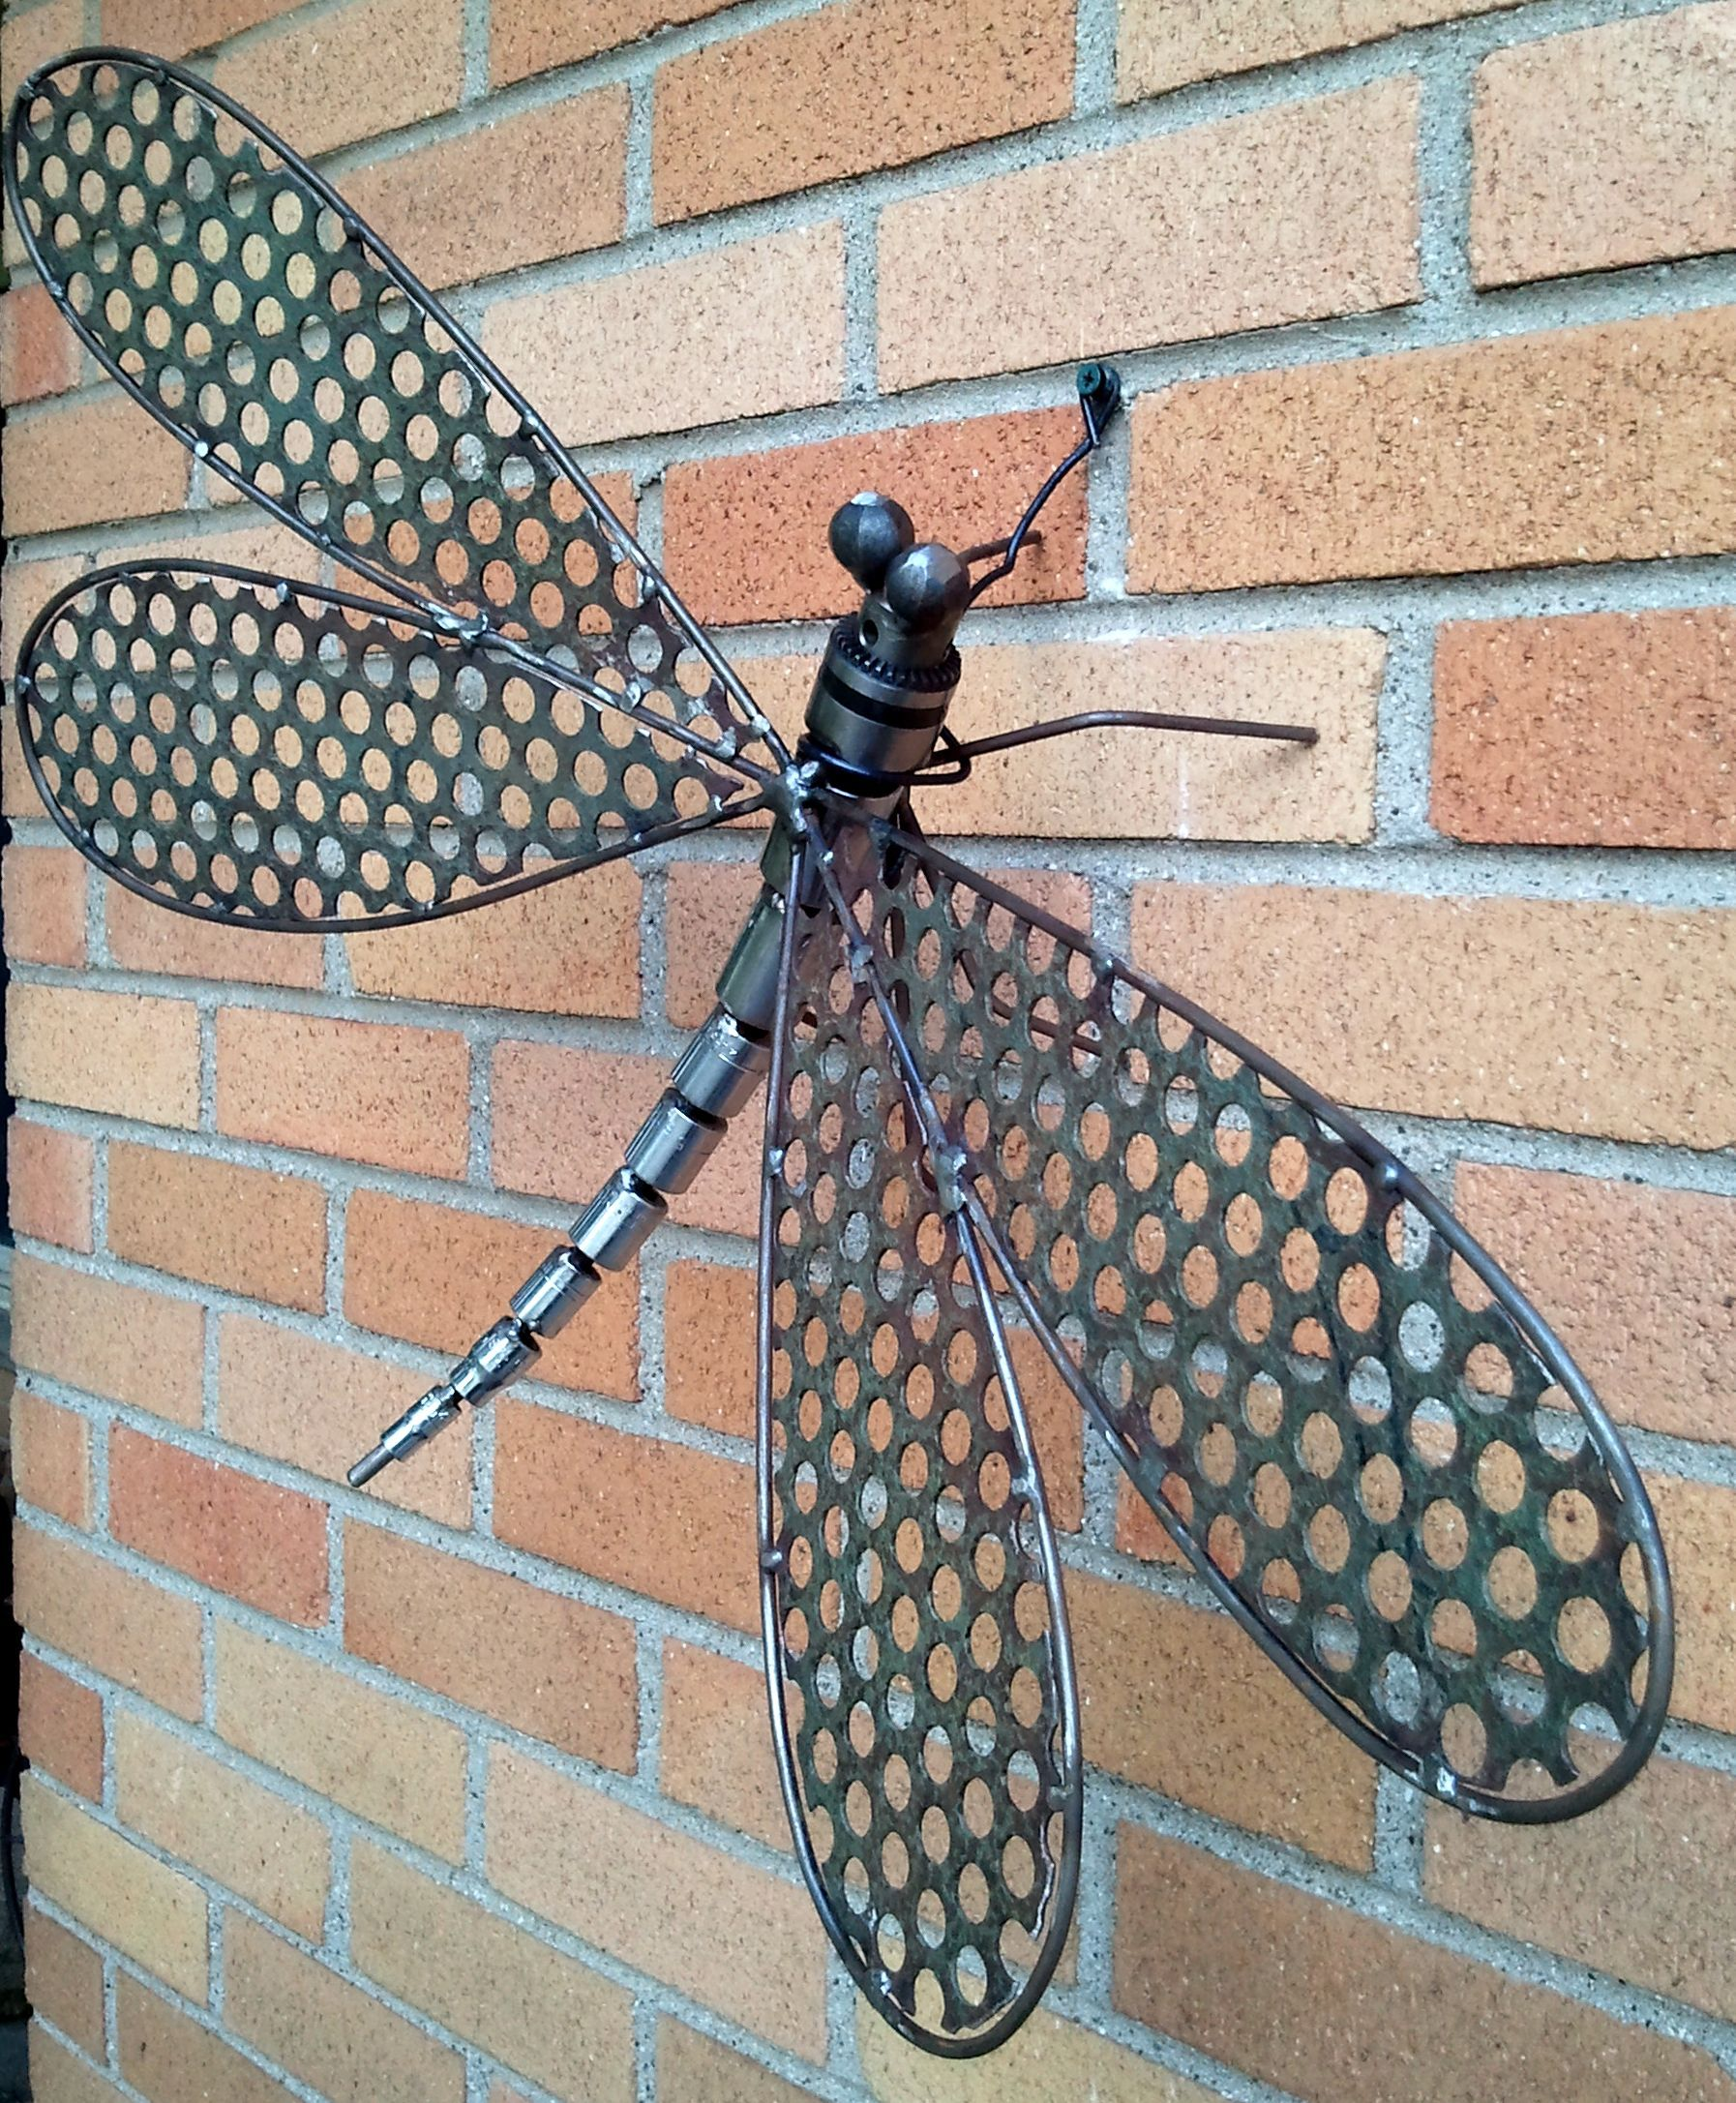 Dragonfly 204220 Metal Workings For Sale Welding Art Metal Tree Wall Art Scrap Metal Art